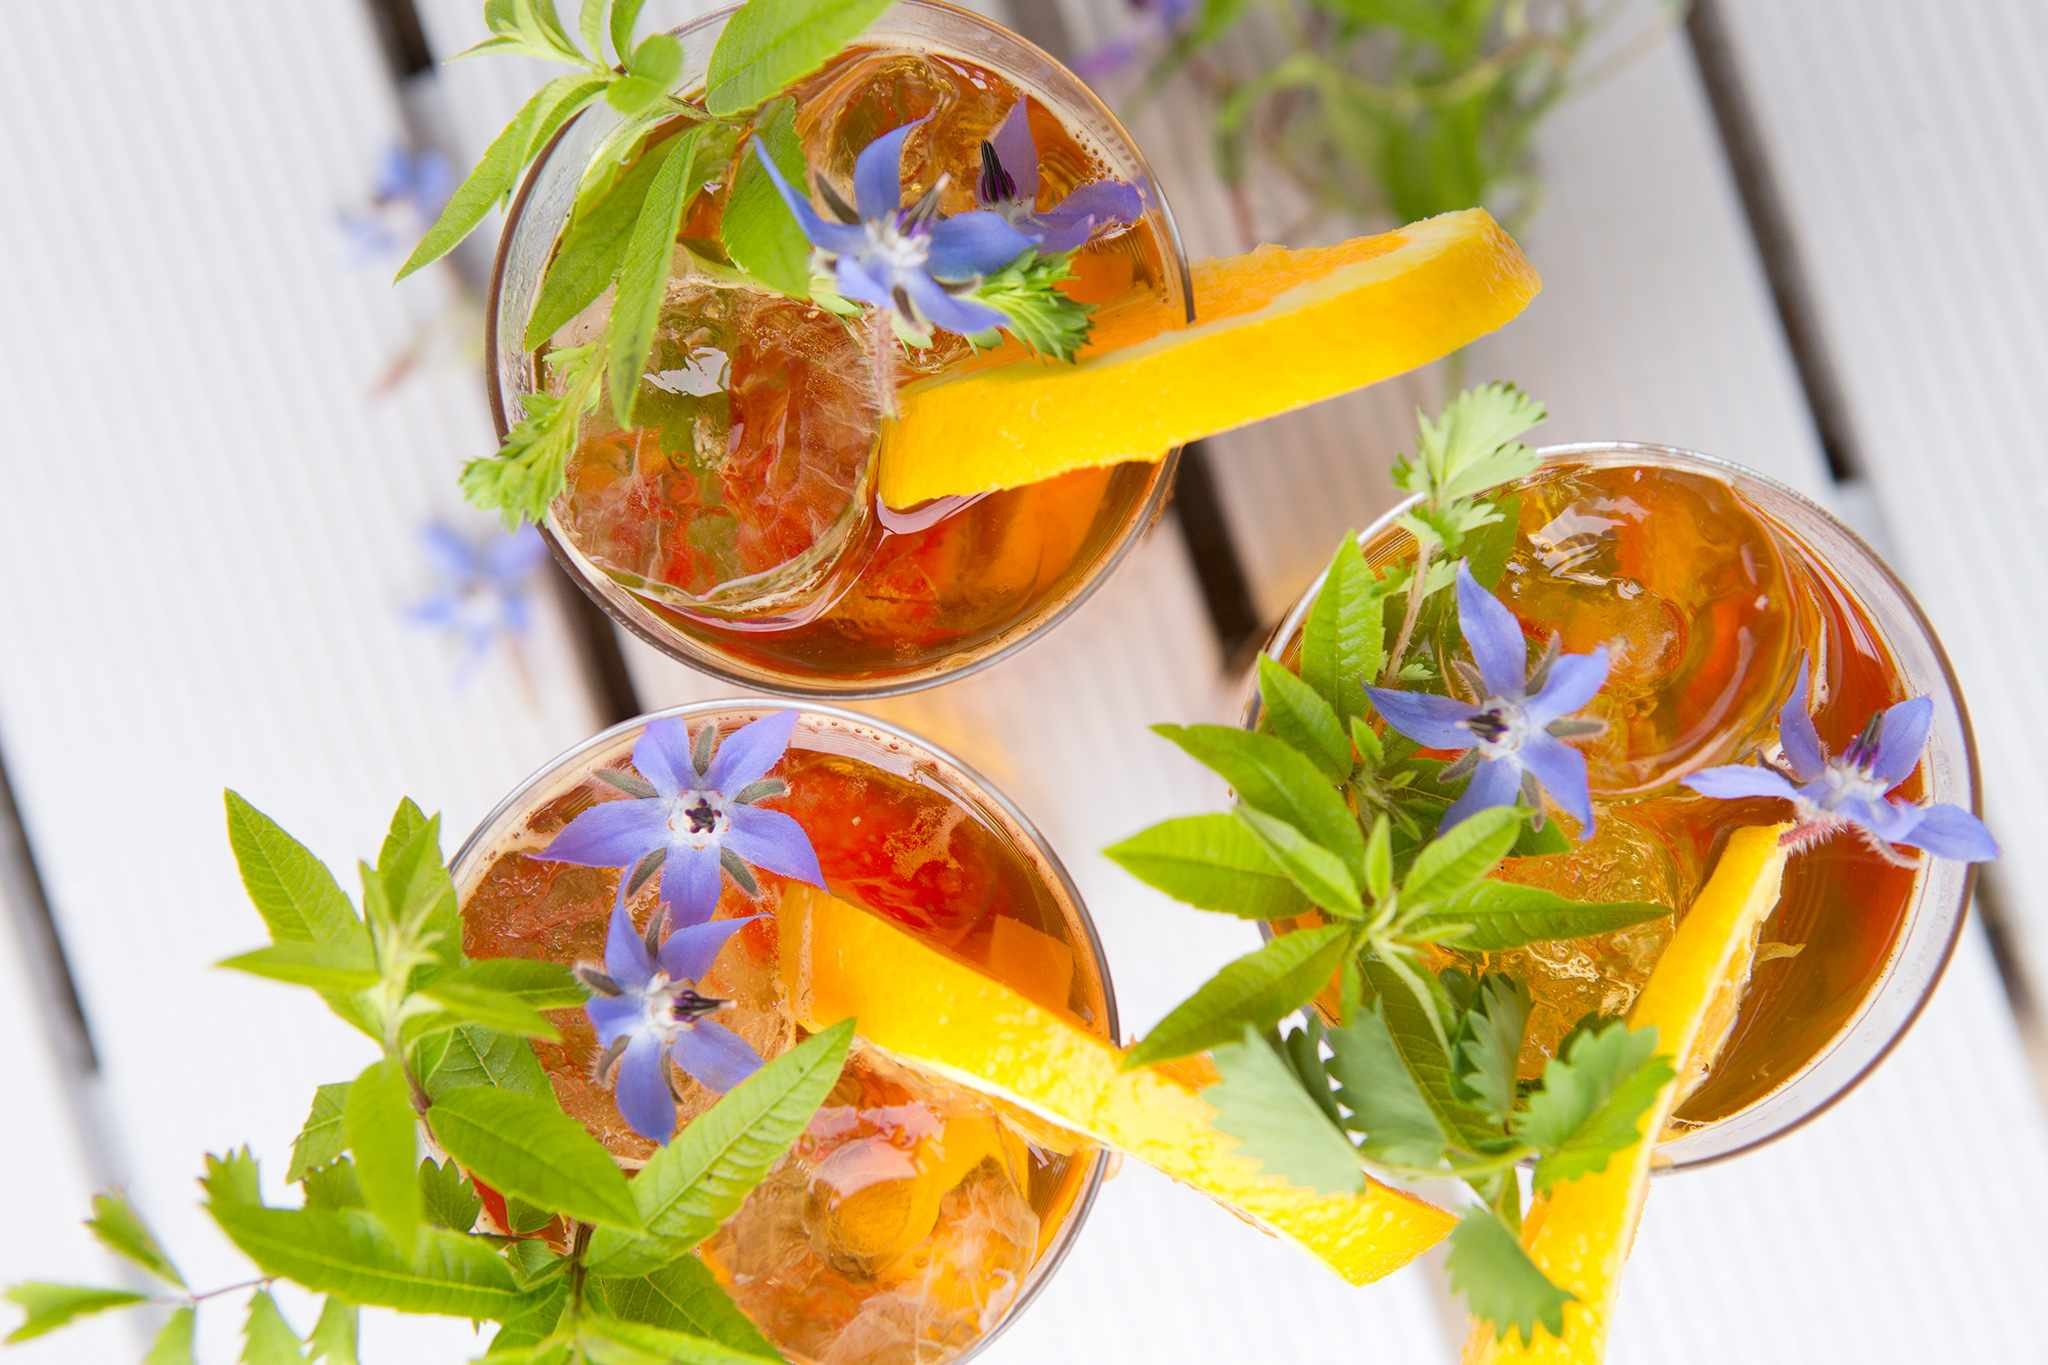 Best Edible Flowers to Grow